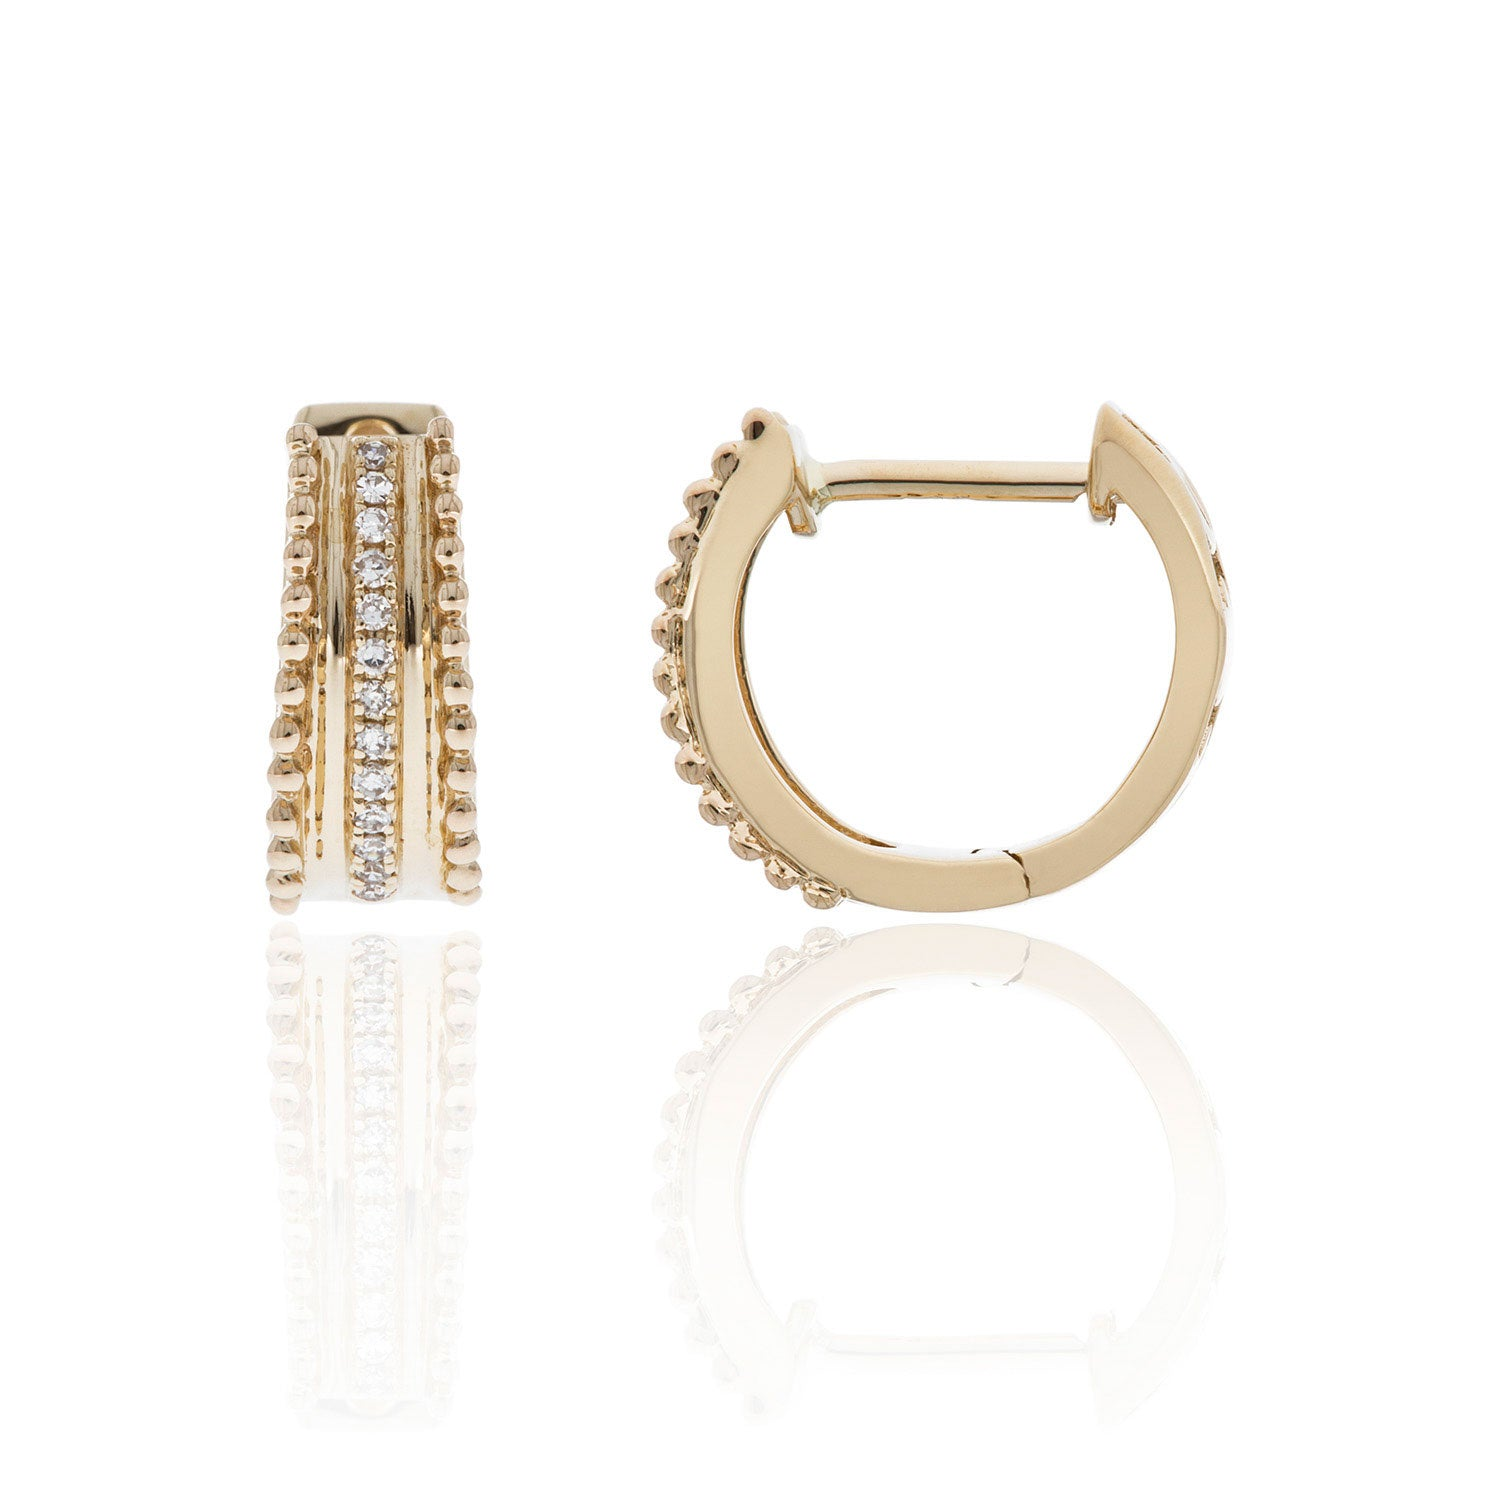 This pair of huggie hoop earrings feature a row of diamond accents flanked by beaded rows in 14K yellow gold.